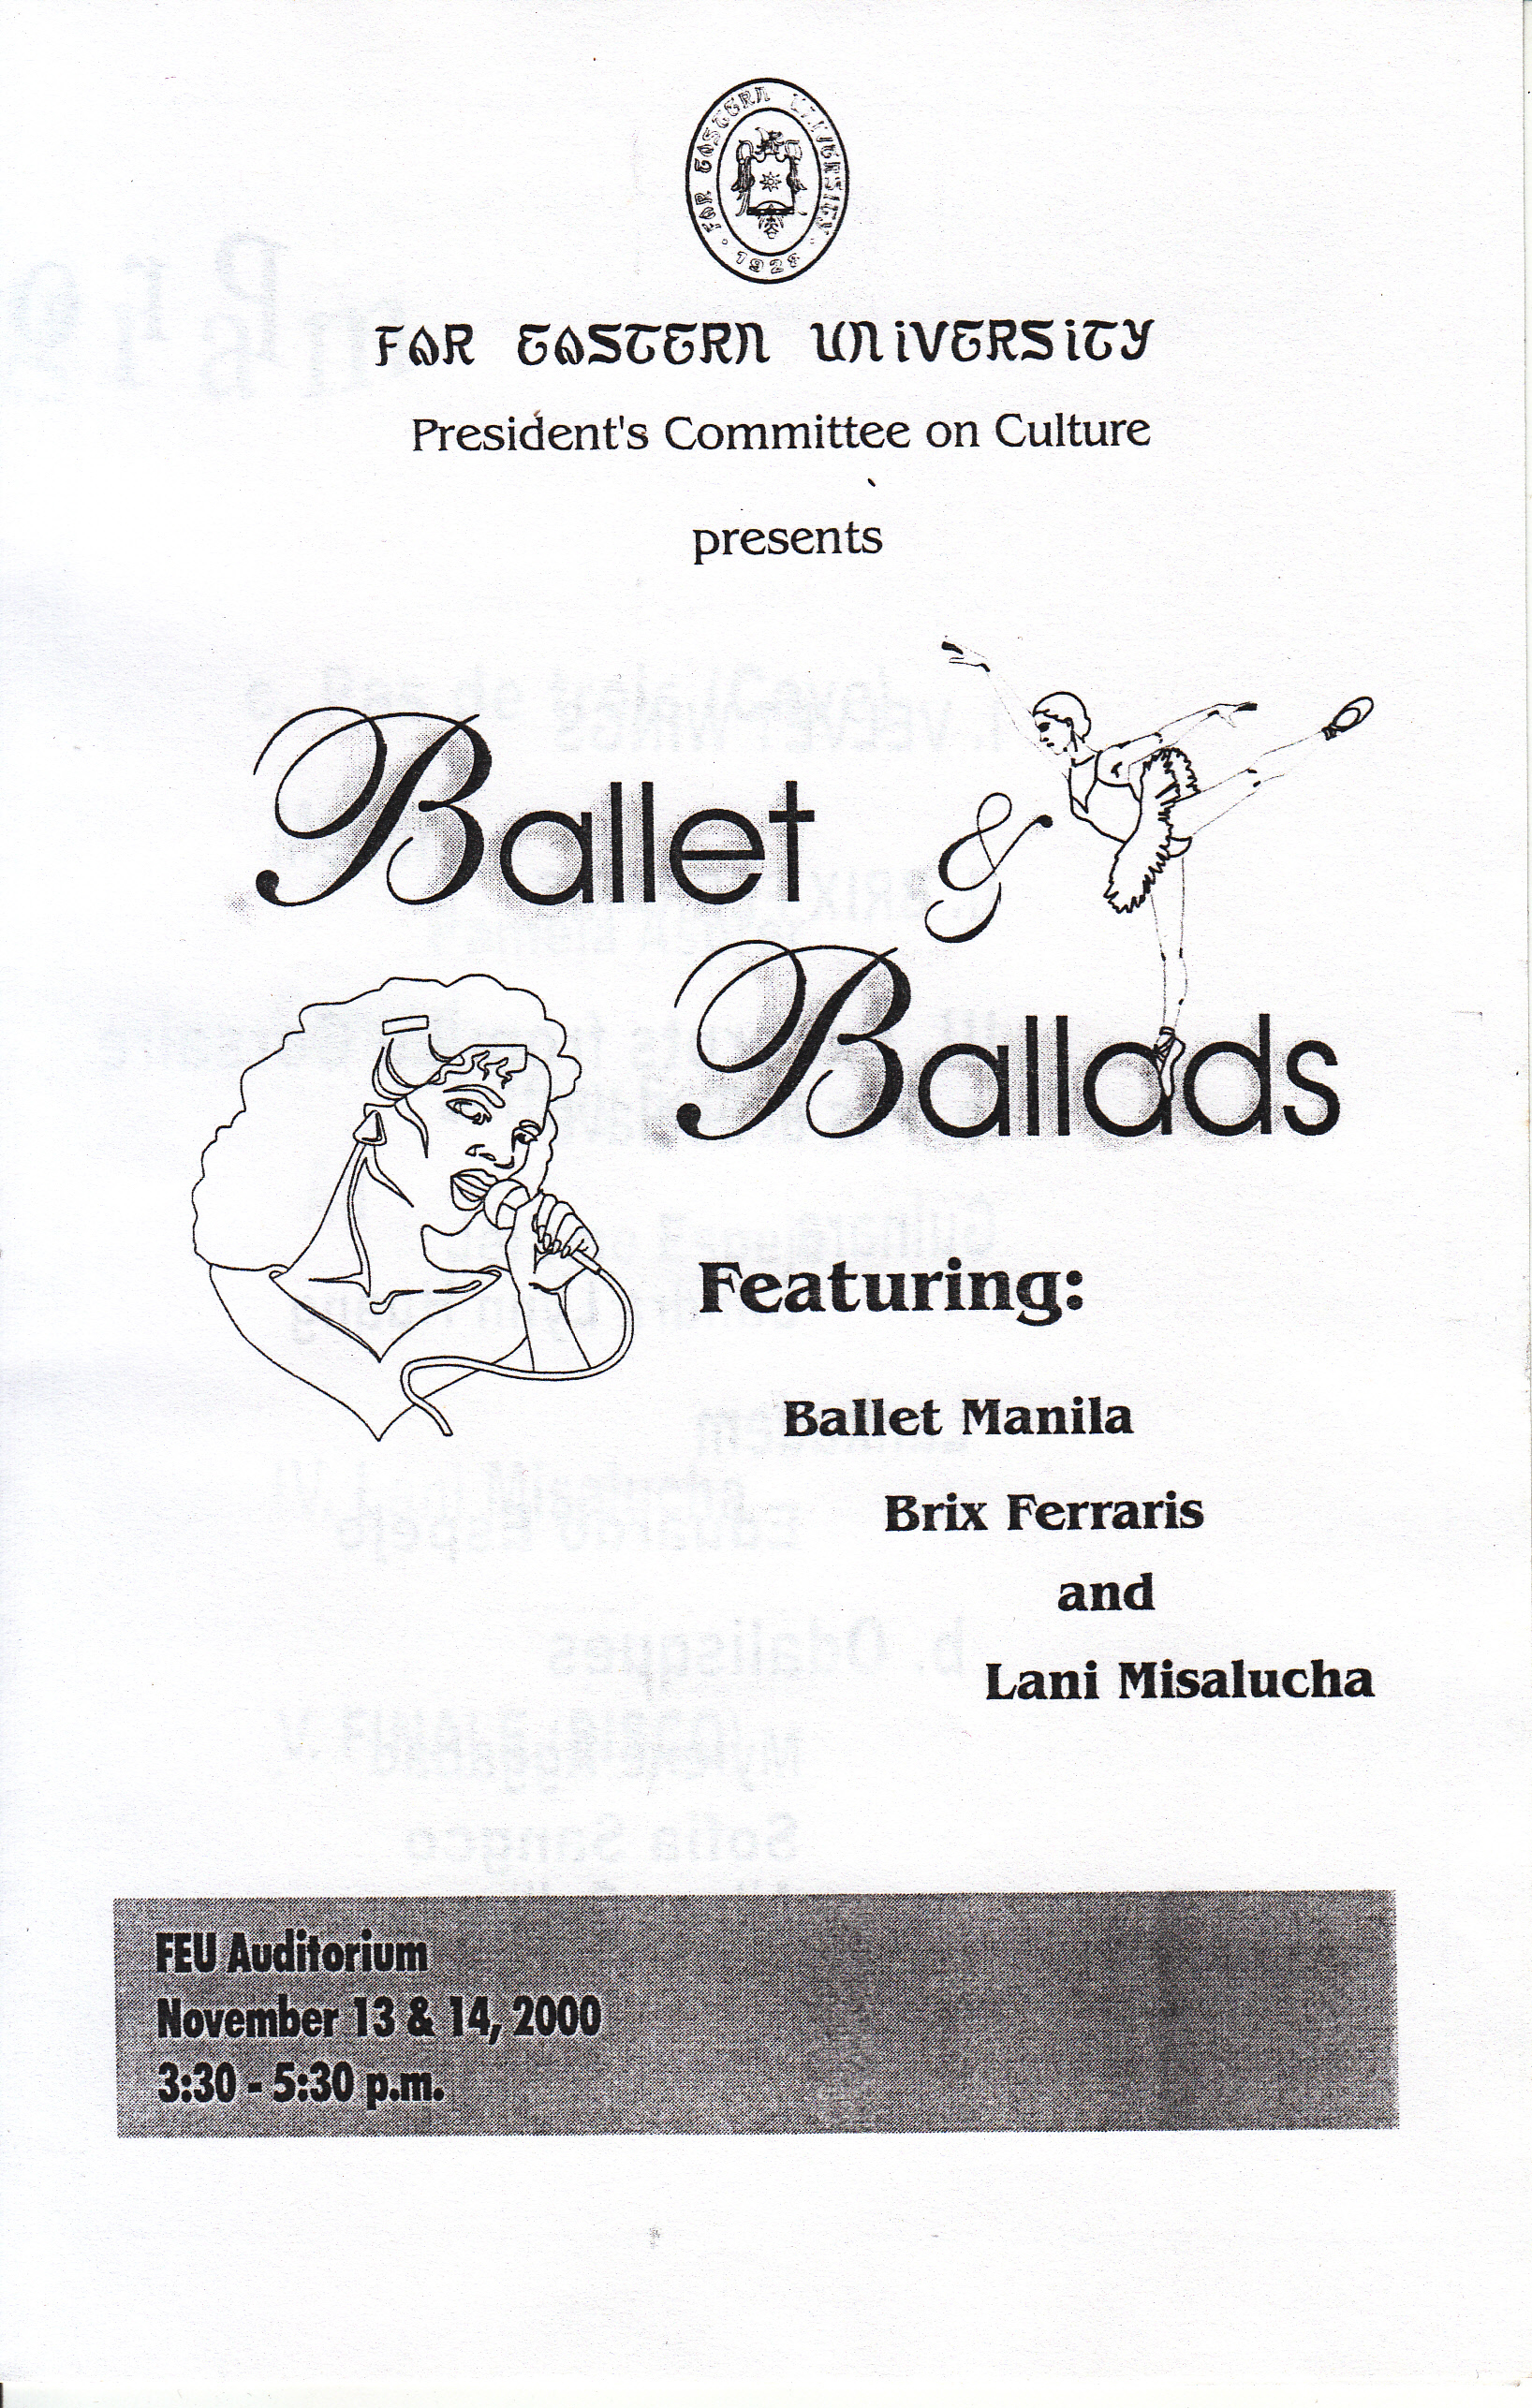 The campus tour included two shows at the Far Eastern University, as indicated in this souvenir program. From the Ballet Manila Archives collection